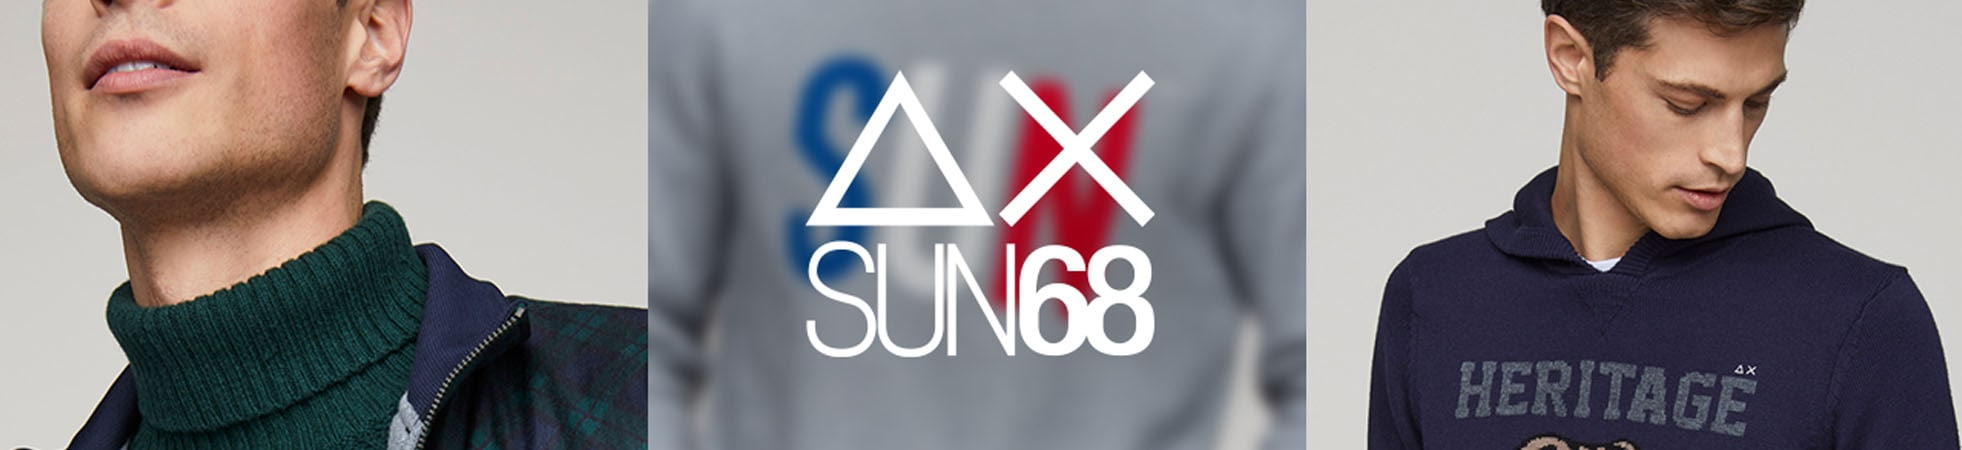 Sun68 Men's Clothing